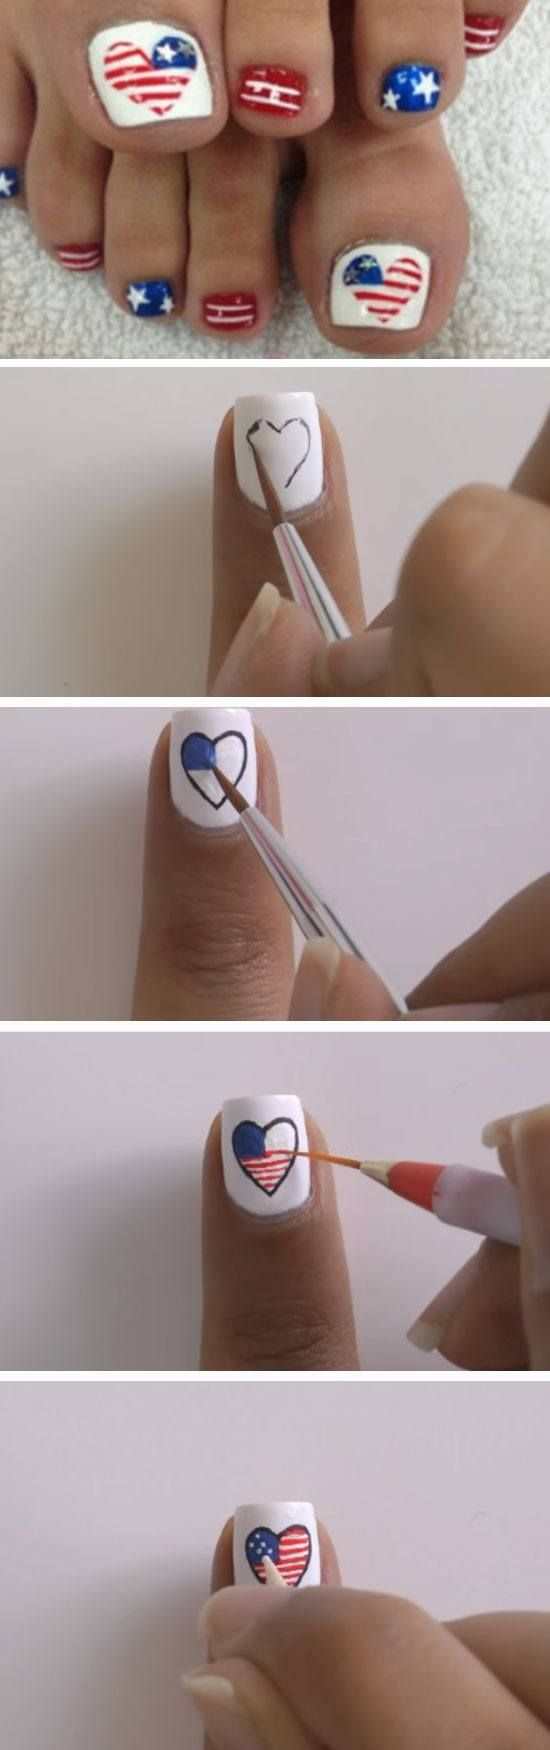 17 Fourth of July Toe Nail Designs for Summer | Toe nail designs ...